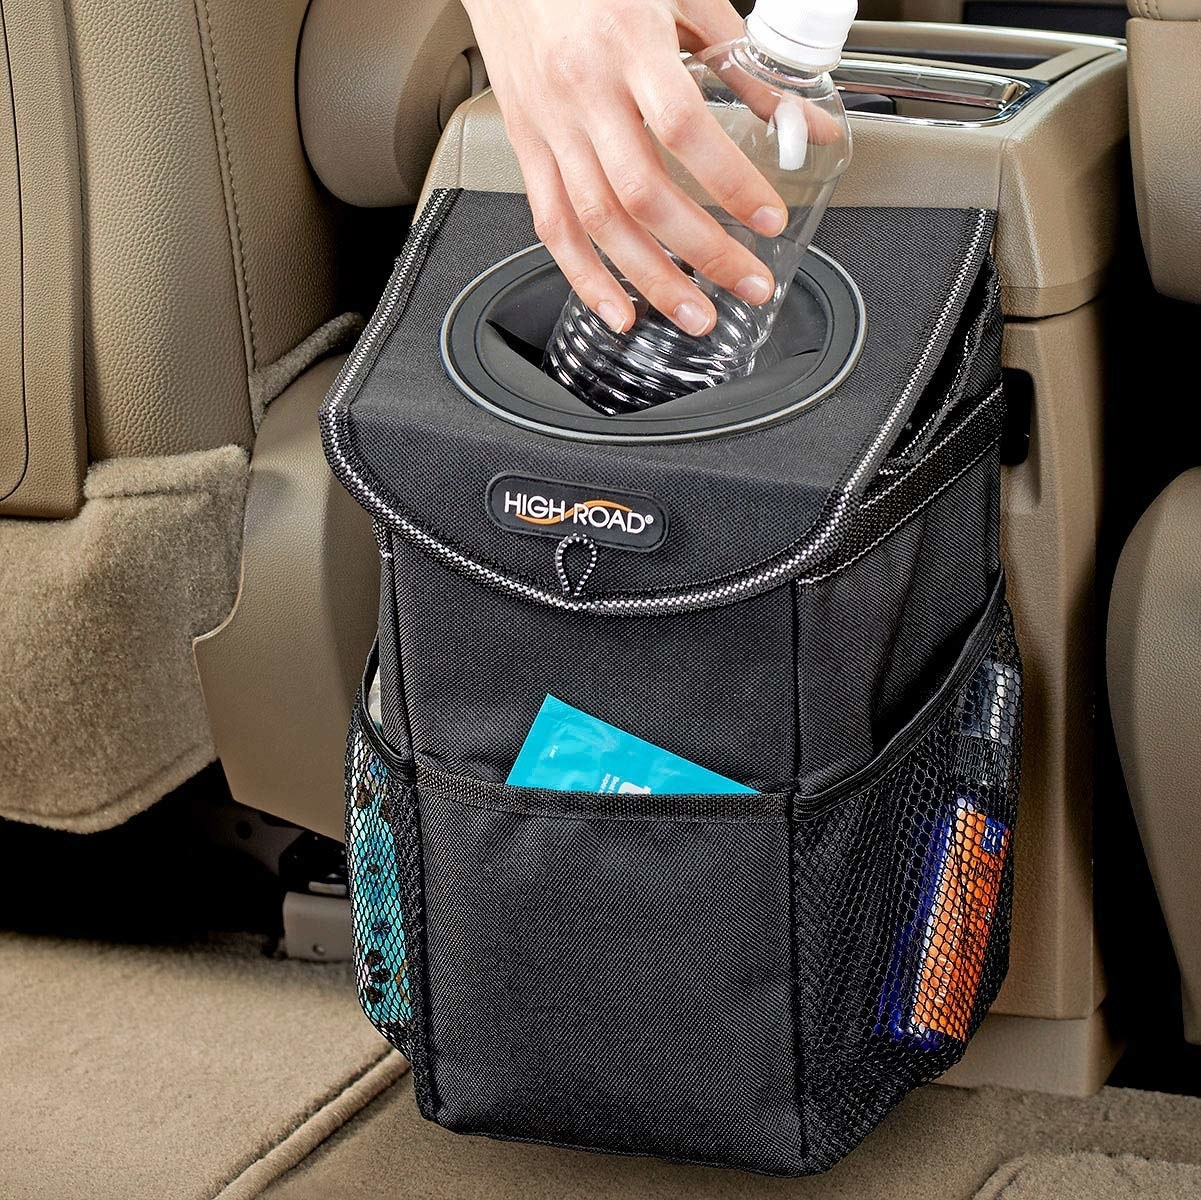 A small black trash can hooked to the back of a car console with pockets and a little hole for depositing trash